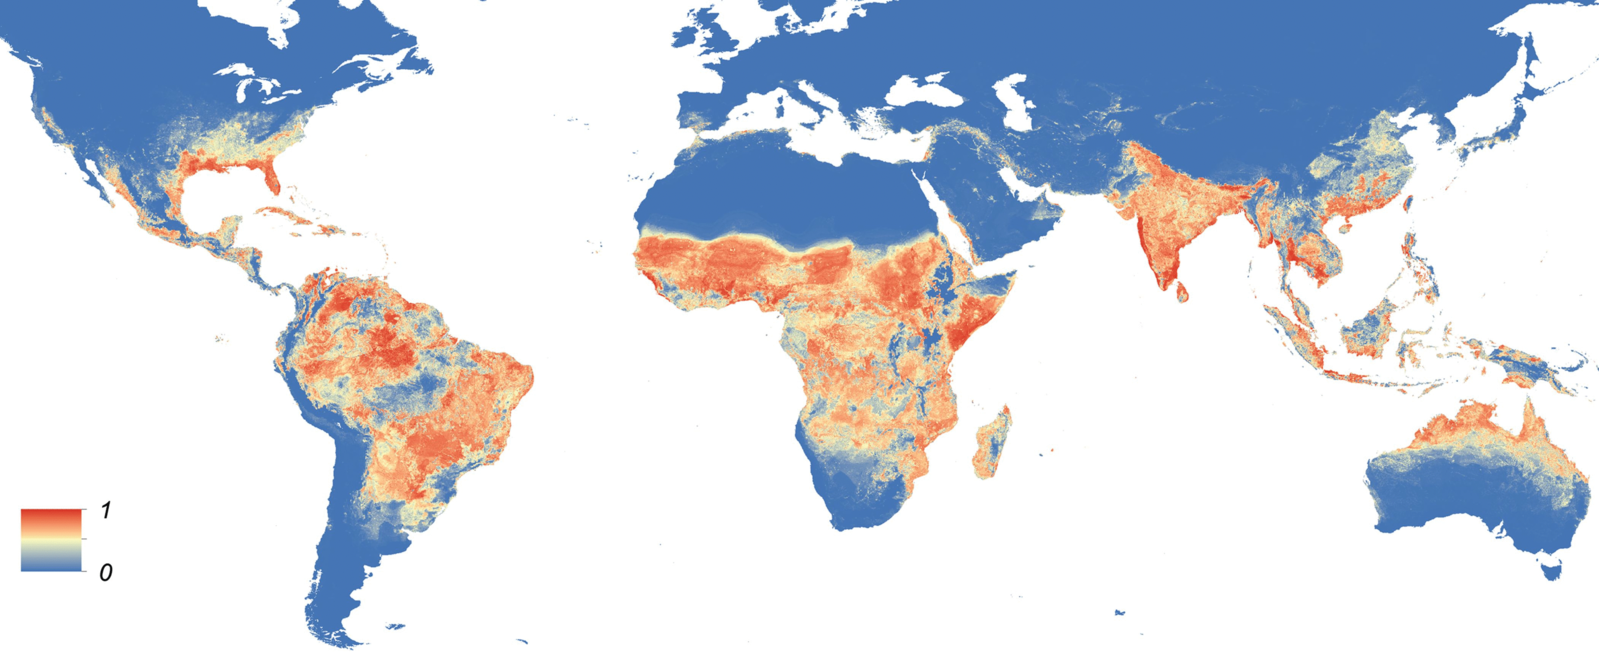 1599px-Global_Aedes_aegypti_distribution_%2528e08347%2529.png